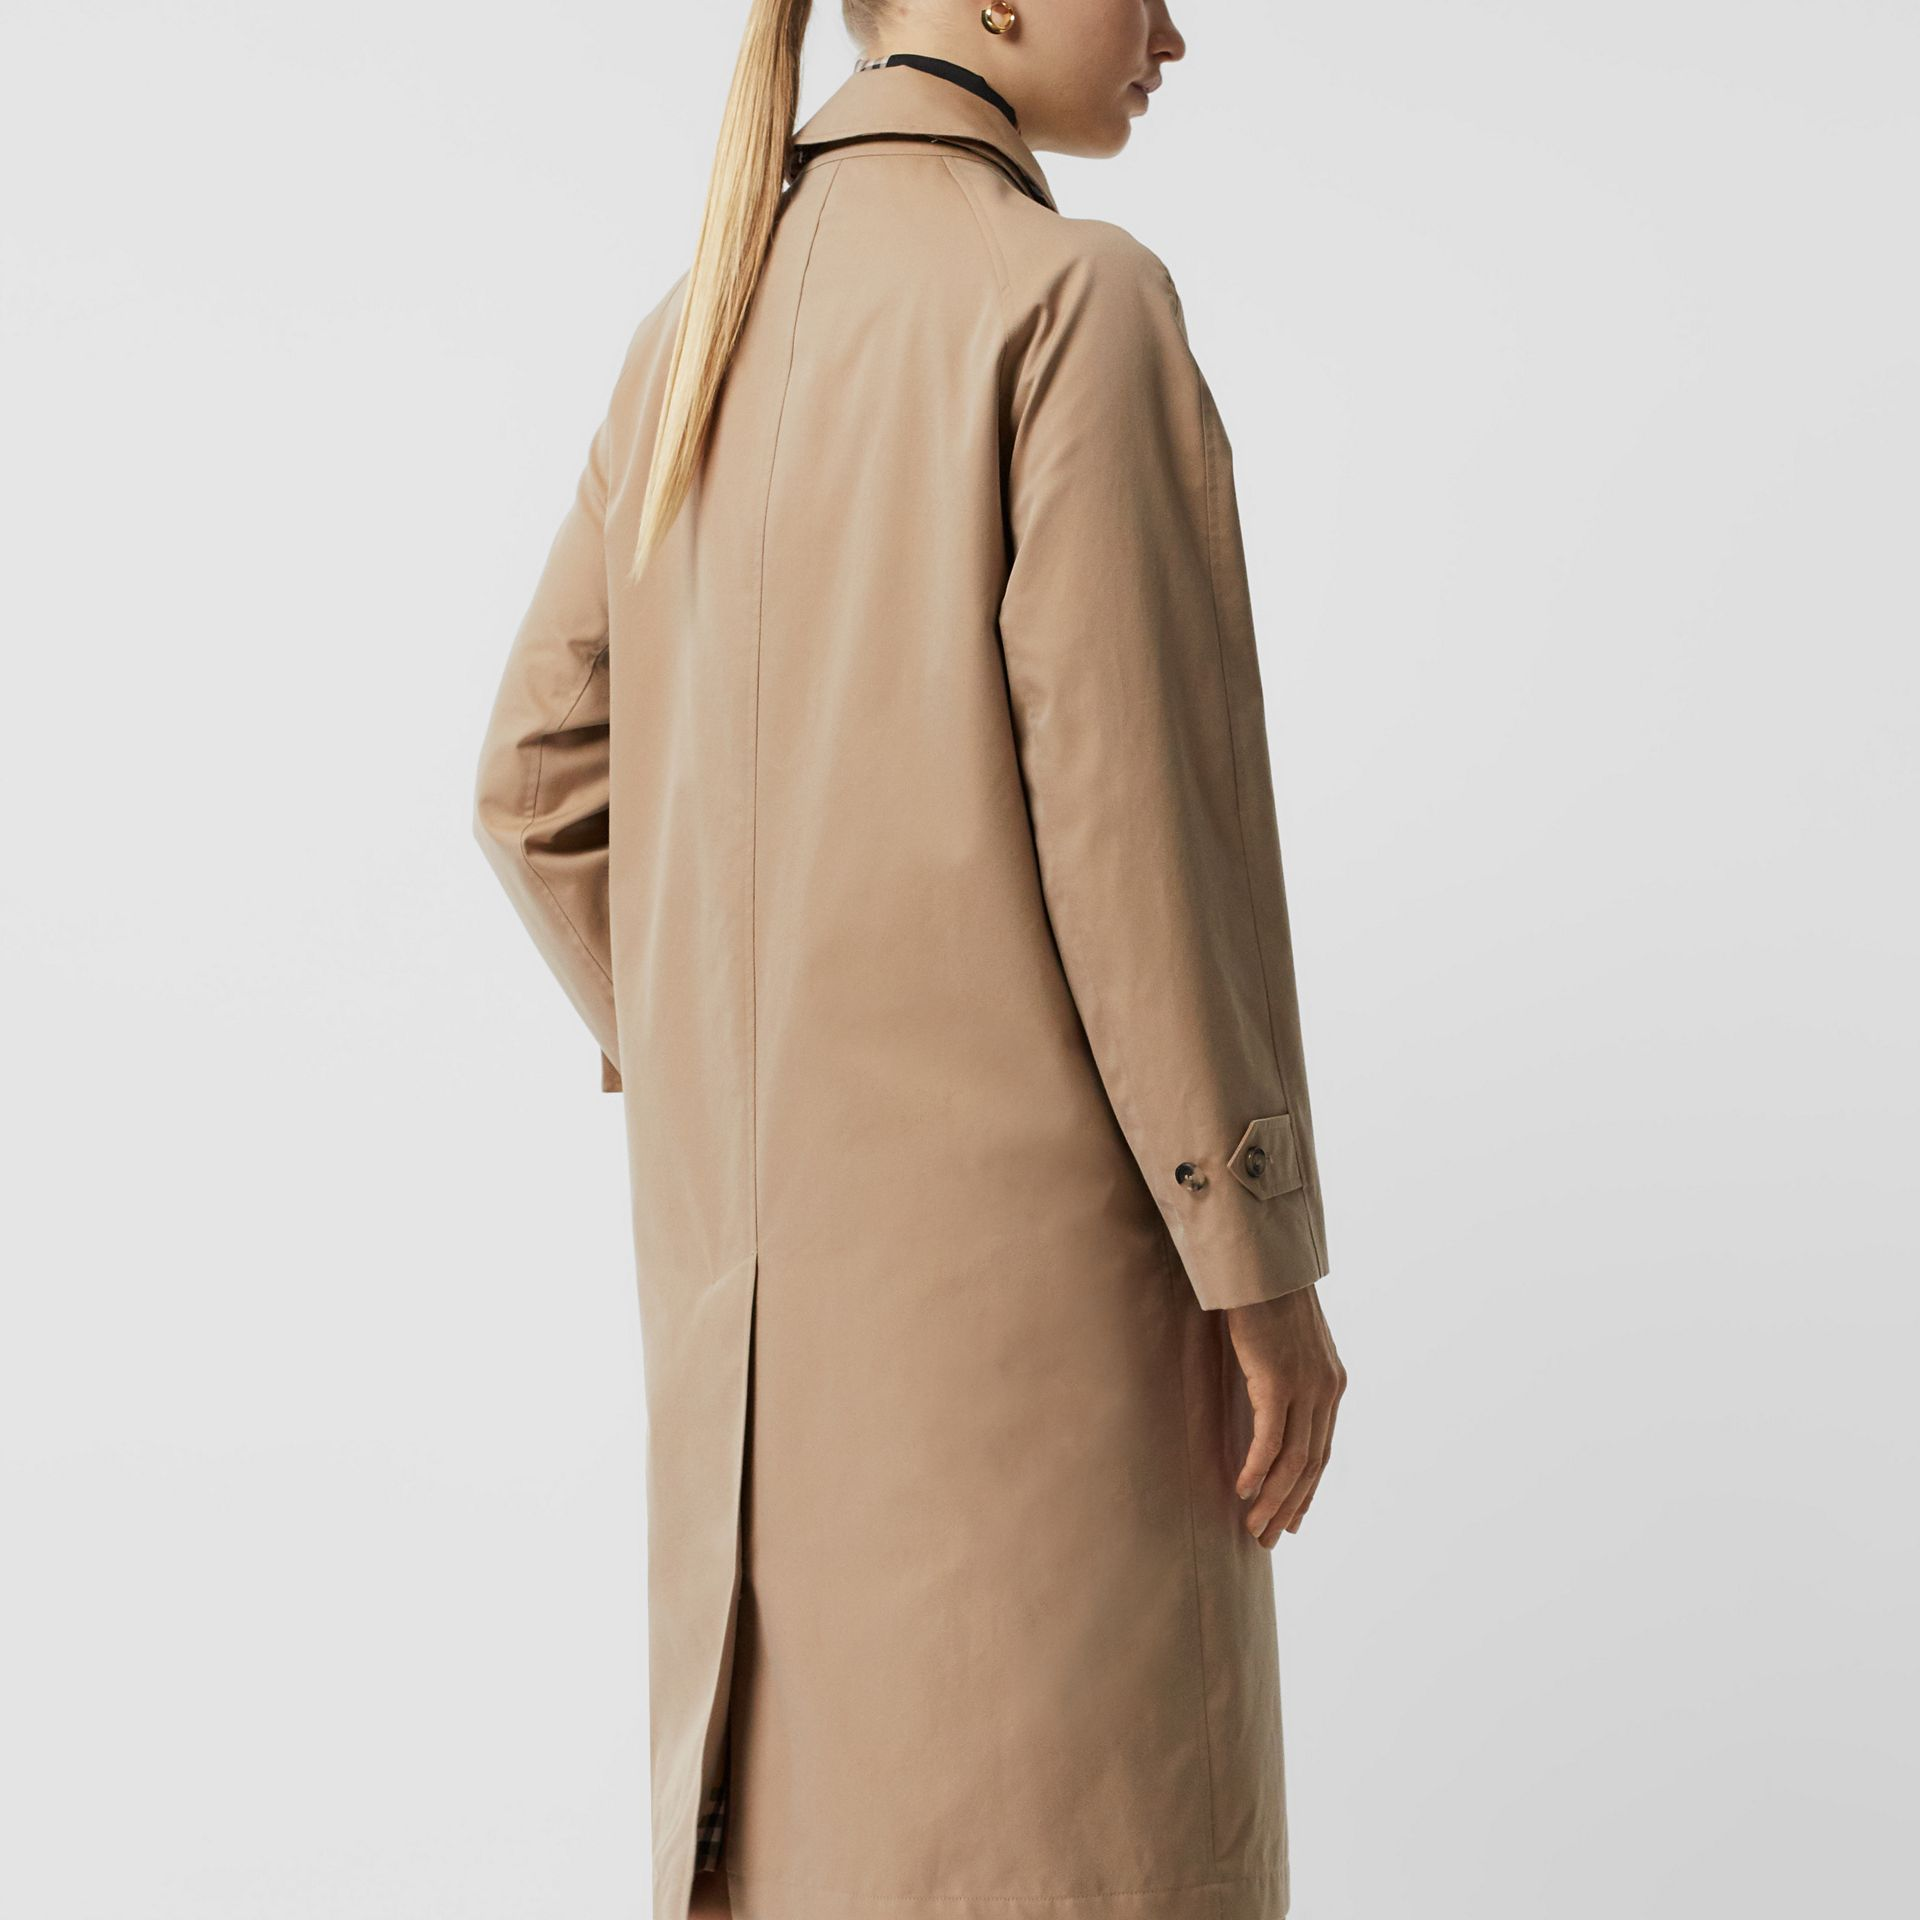 Grommet Detail Cotton Gabardine Car Coat in Honey - Women | Burberry - gallery image 2